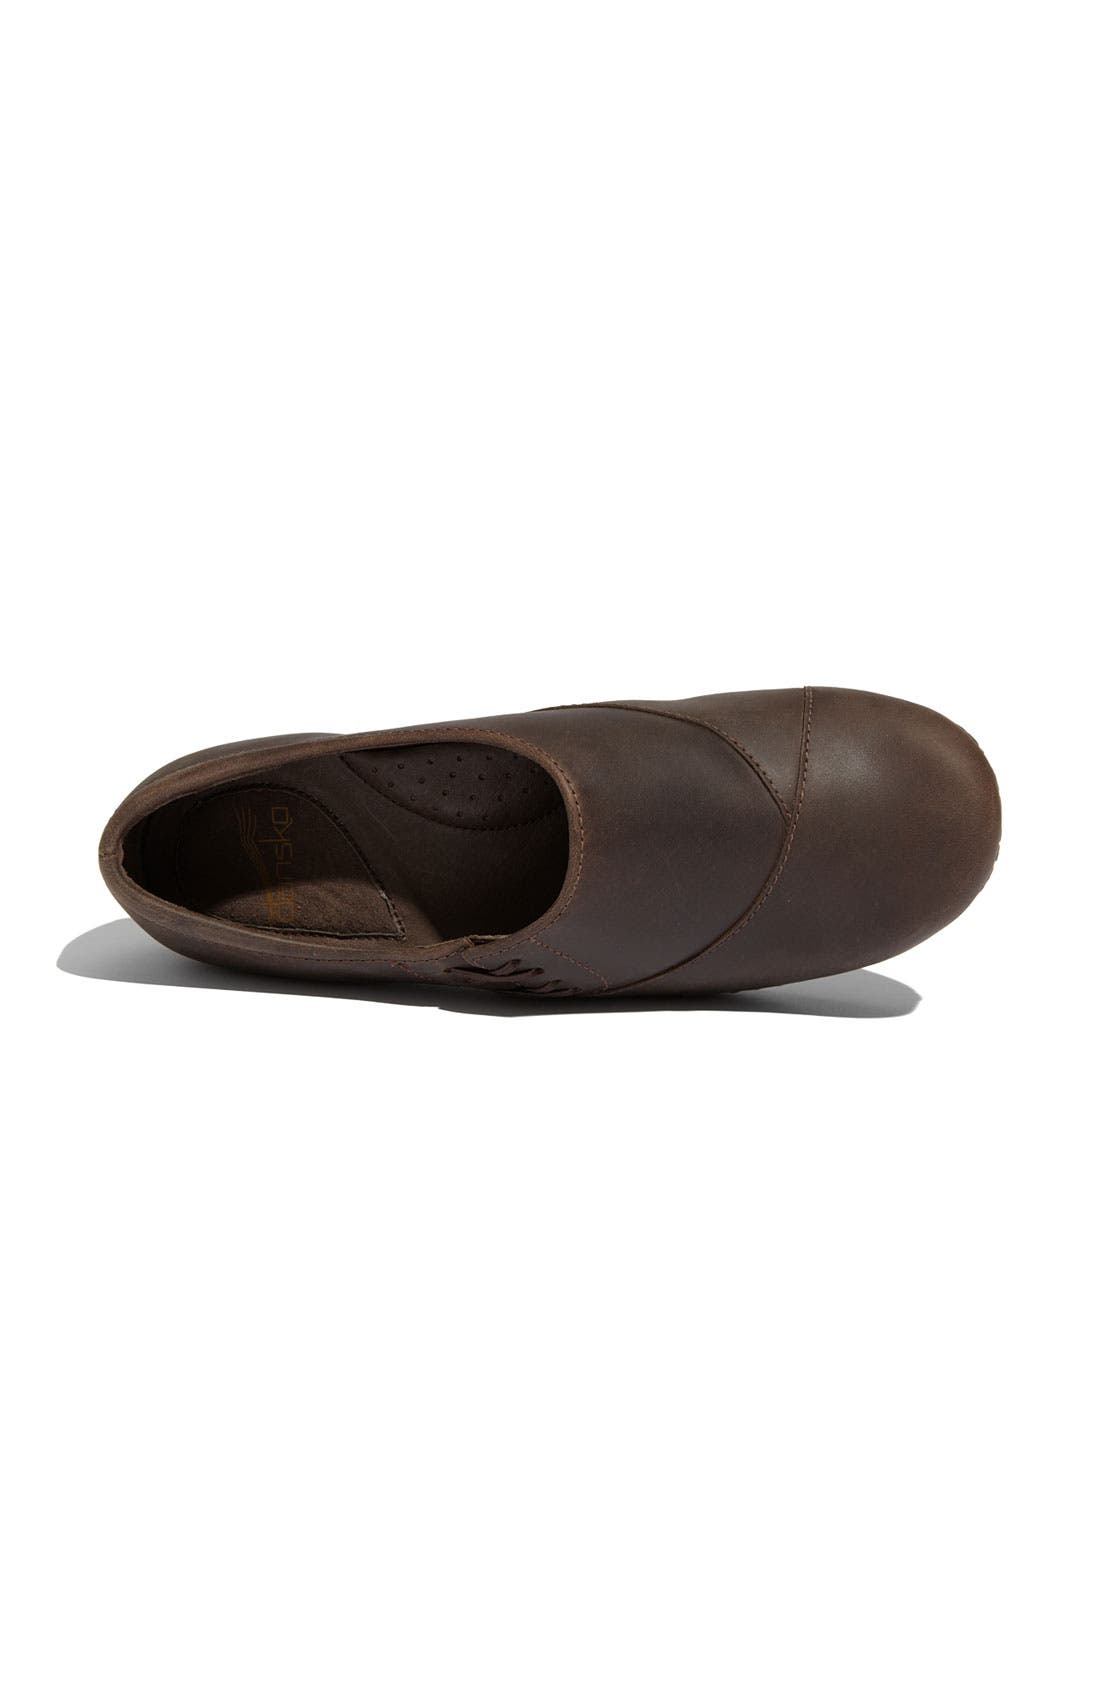 Alternate Image 3  - Dansko 'Stacie' Clog